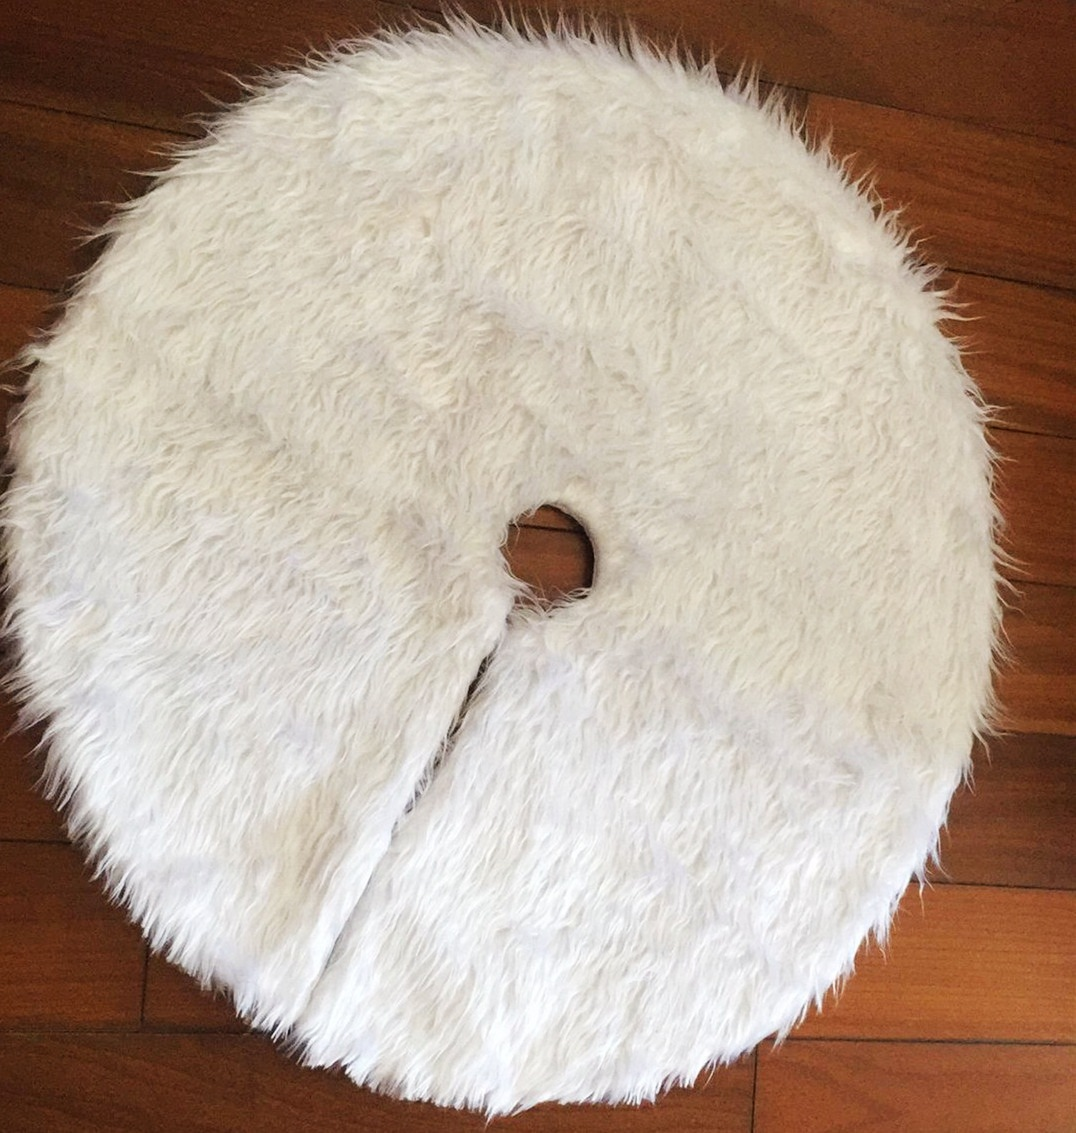 1pc Creative White Plush Christmas Tree Skirt For XMAS Tree Decoration New Year Home Party Supplies